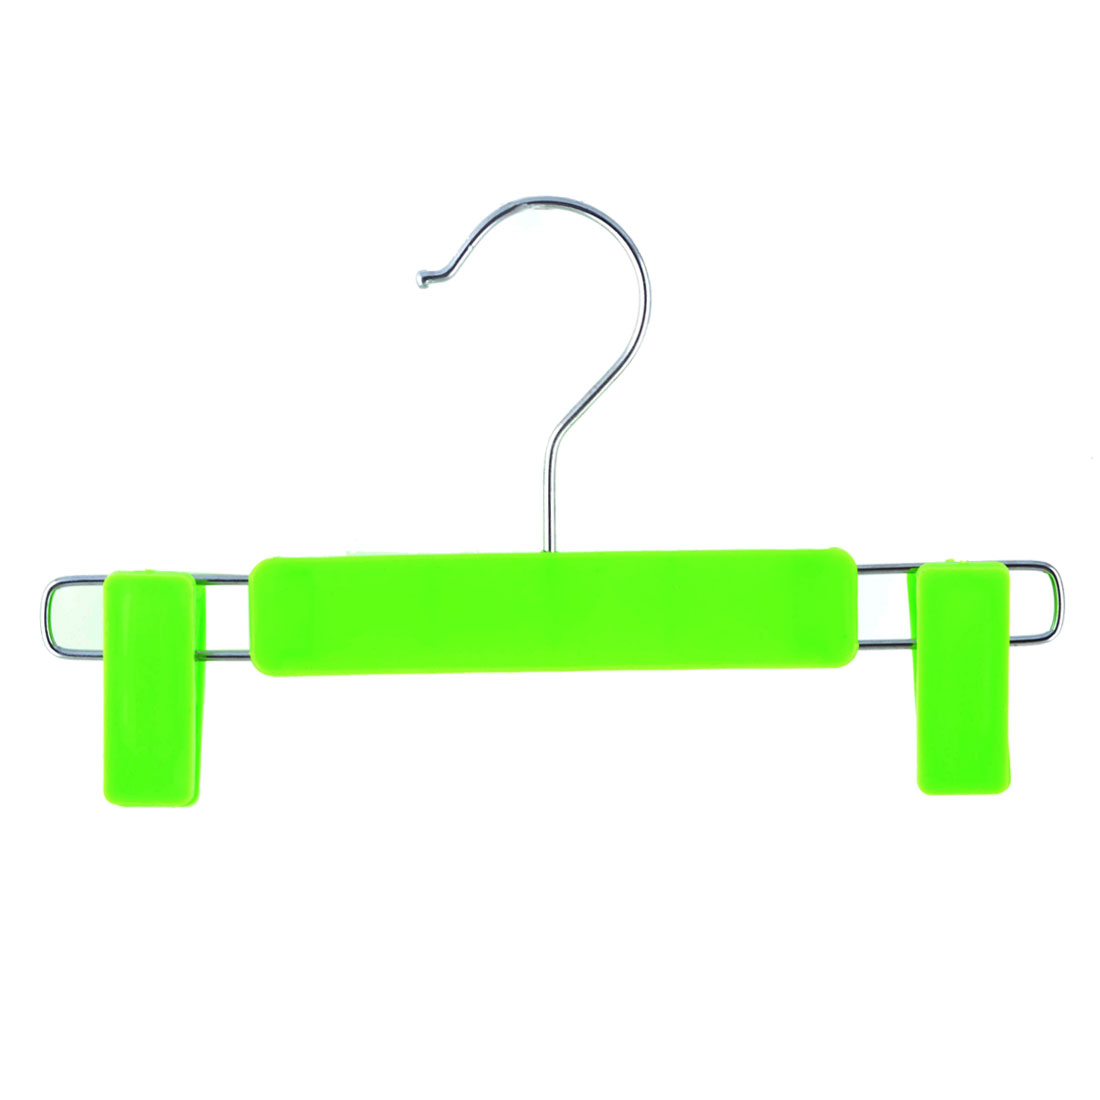 Home Wardrobe Plastic Double Clips Suits Pants Clothes Clothing Hanger Hook Green